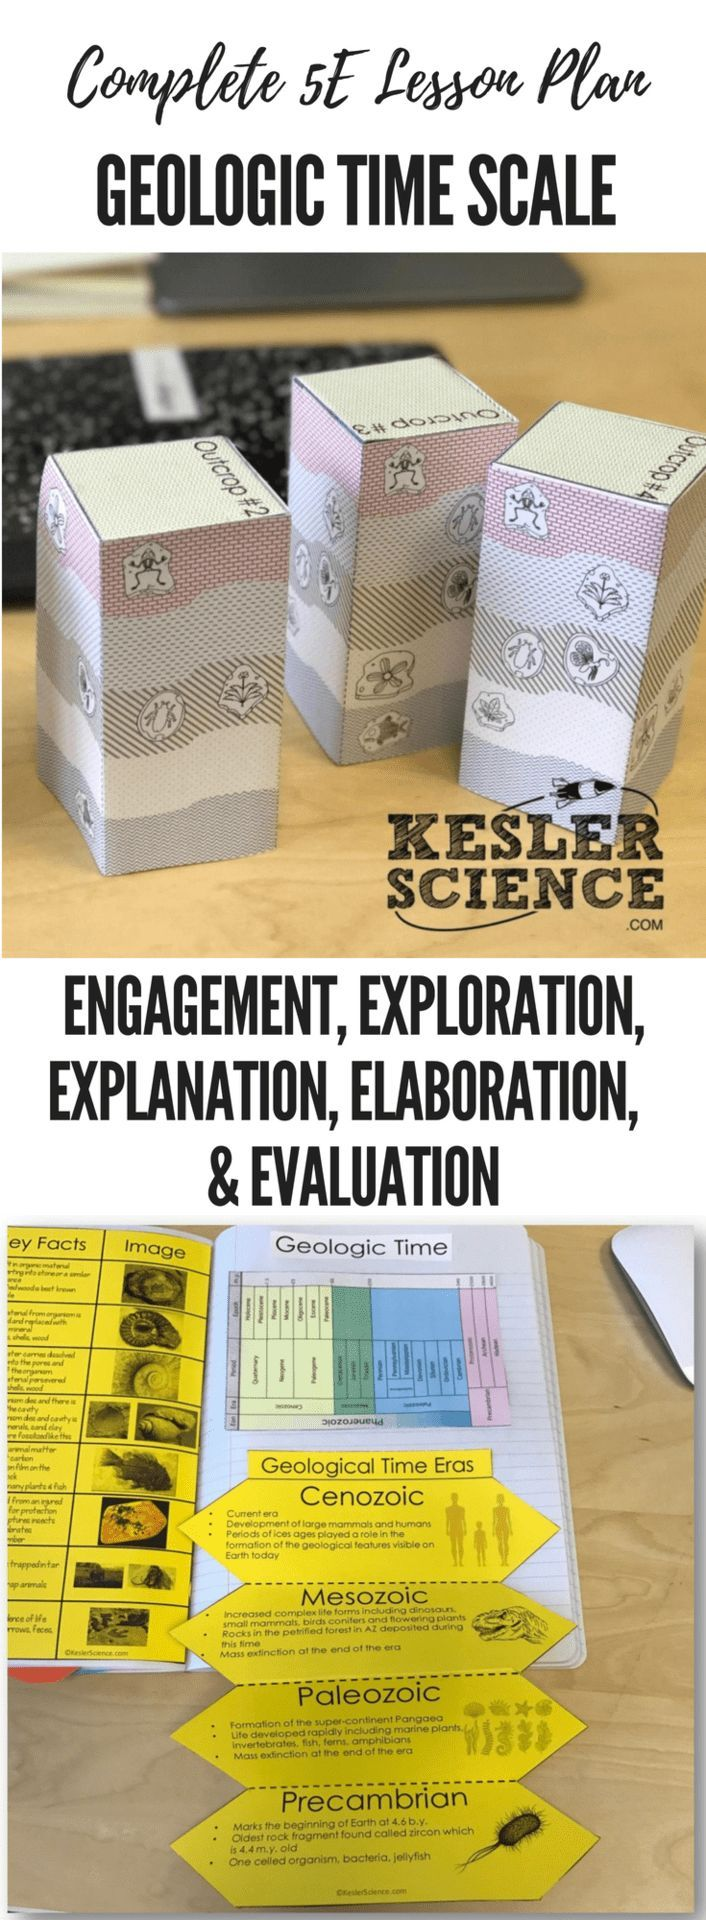 Geologic Time Scale 5e Lesson Plan Pinterest Science Notebooks